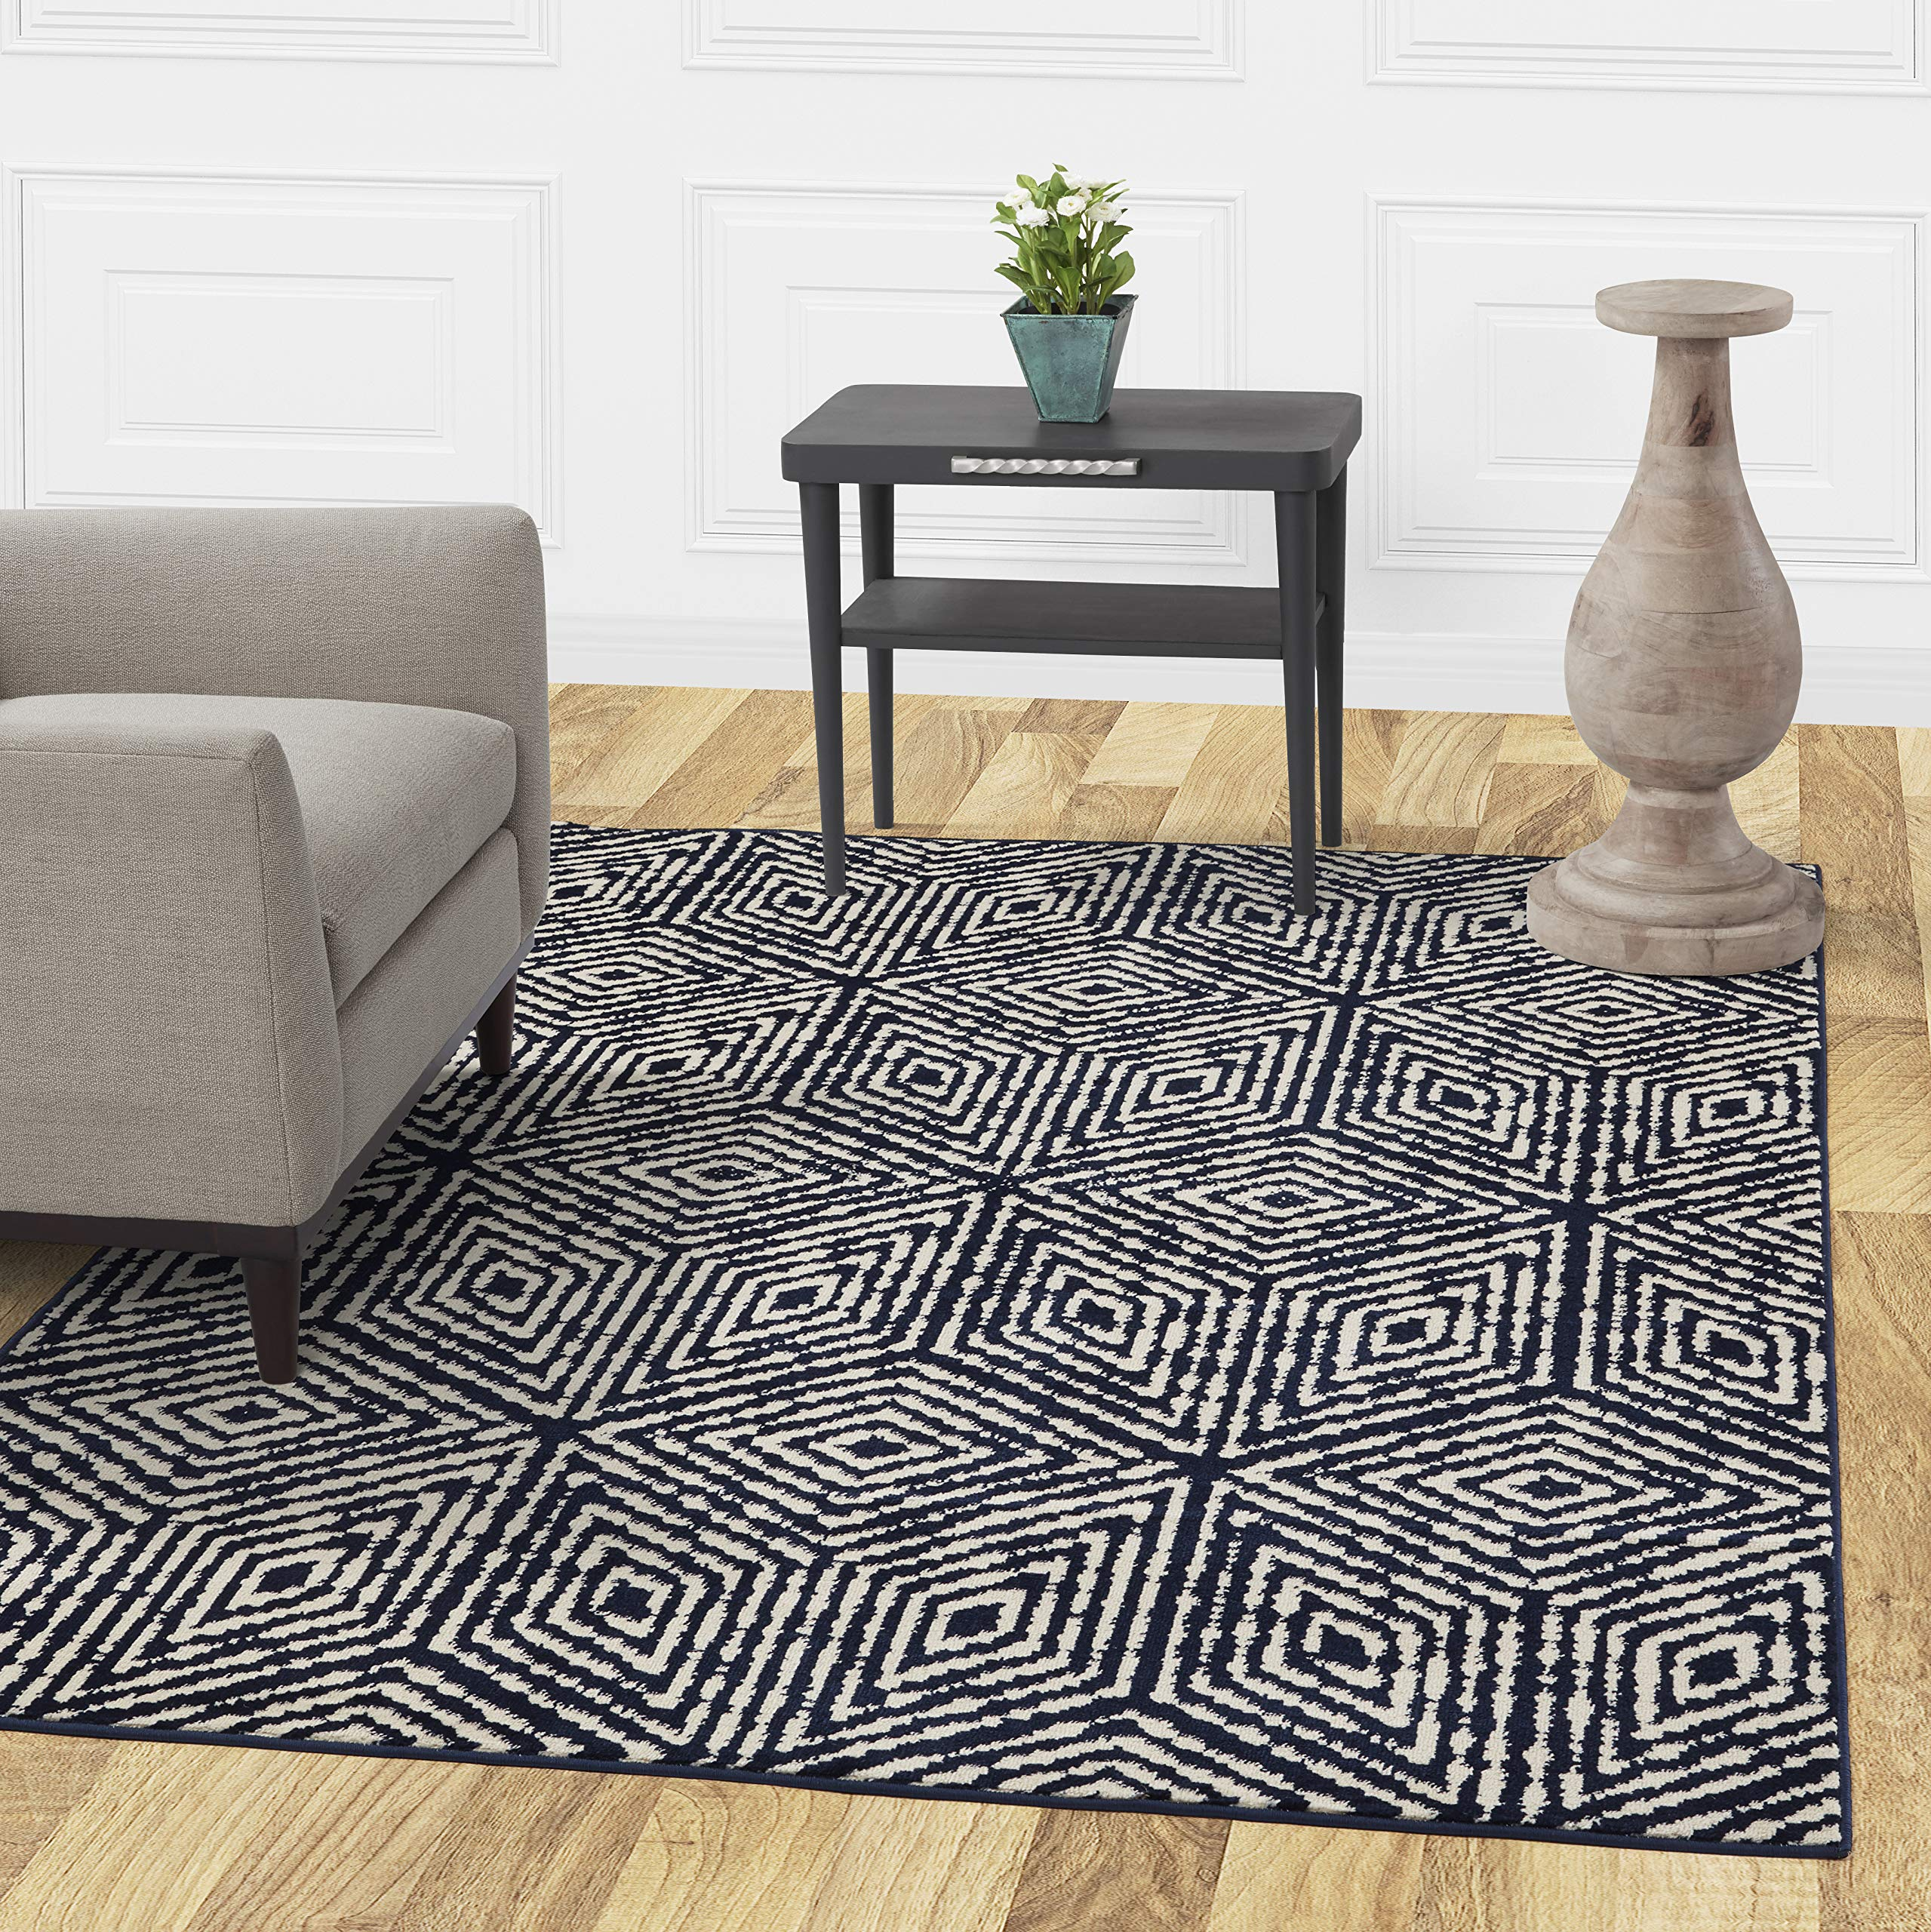 Diagona Designs Contemporary Geometric Cubes Design Modern 8' X 10' Area Rug, 94'' W x 118'' L, Navy/Ivory (JAS2195) by Diagona Designs (Image #1)